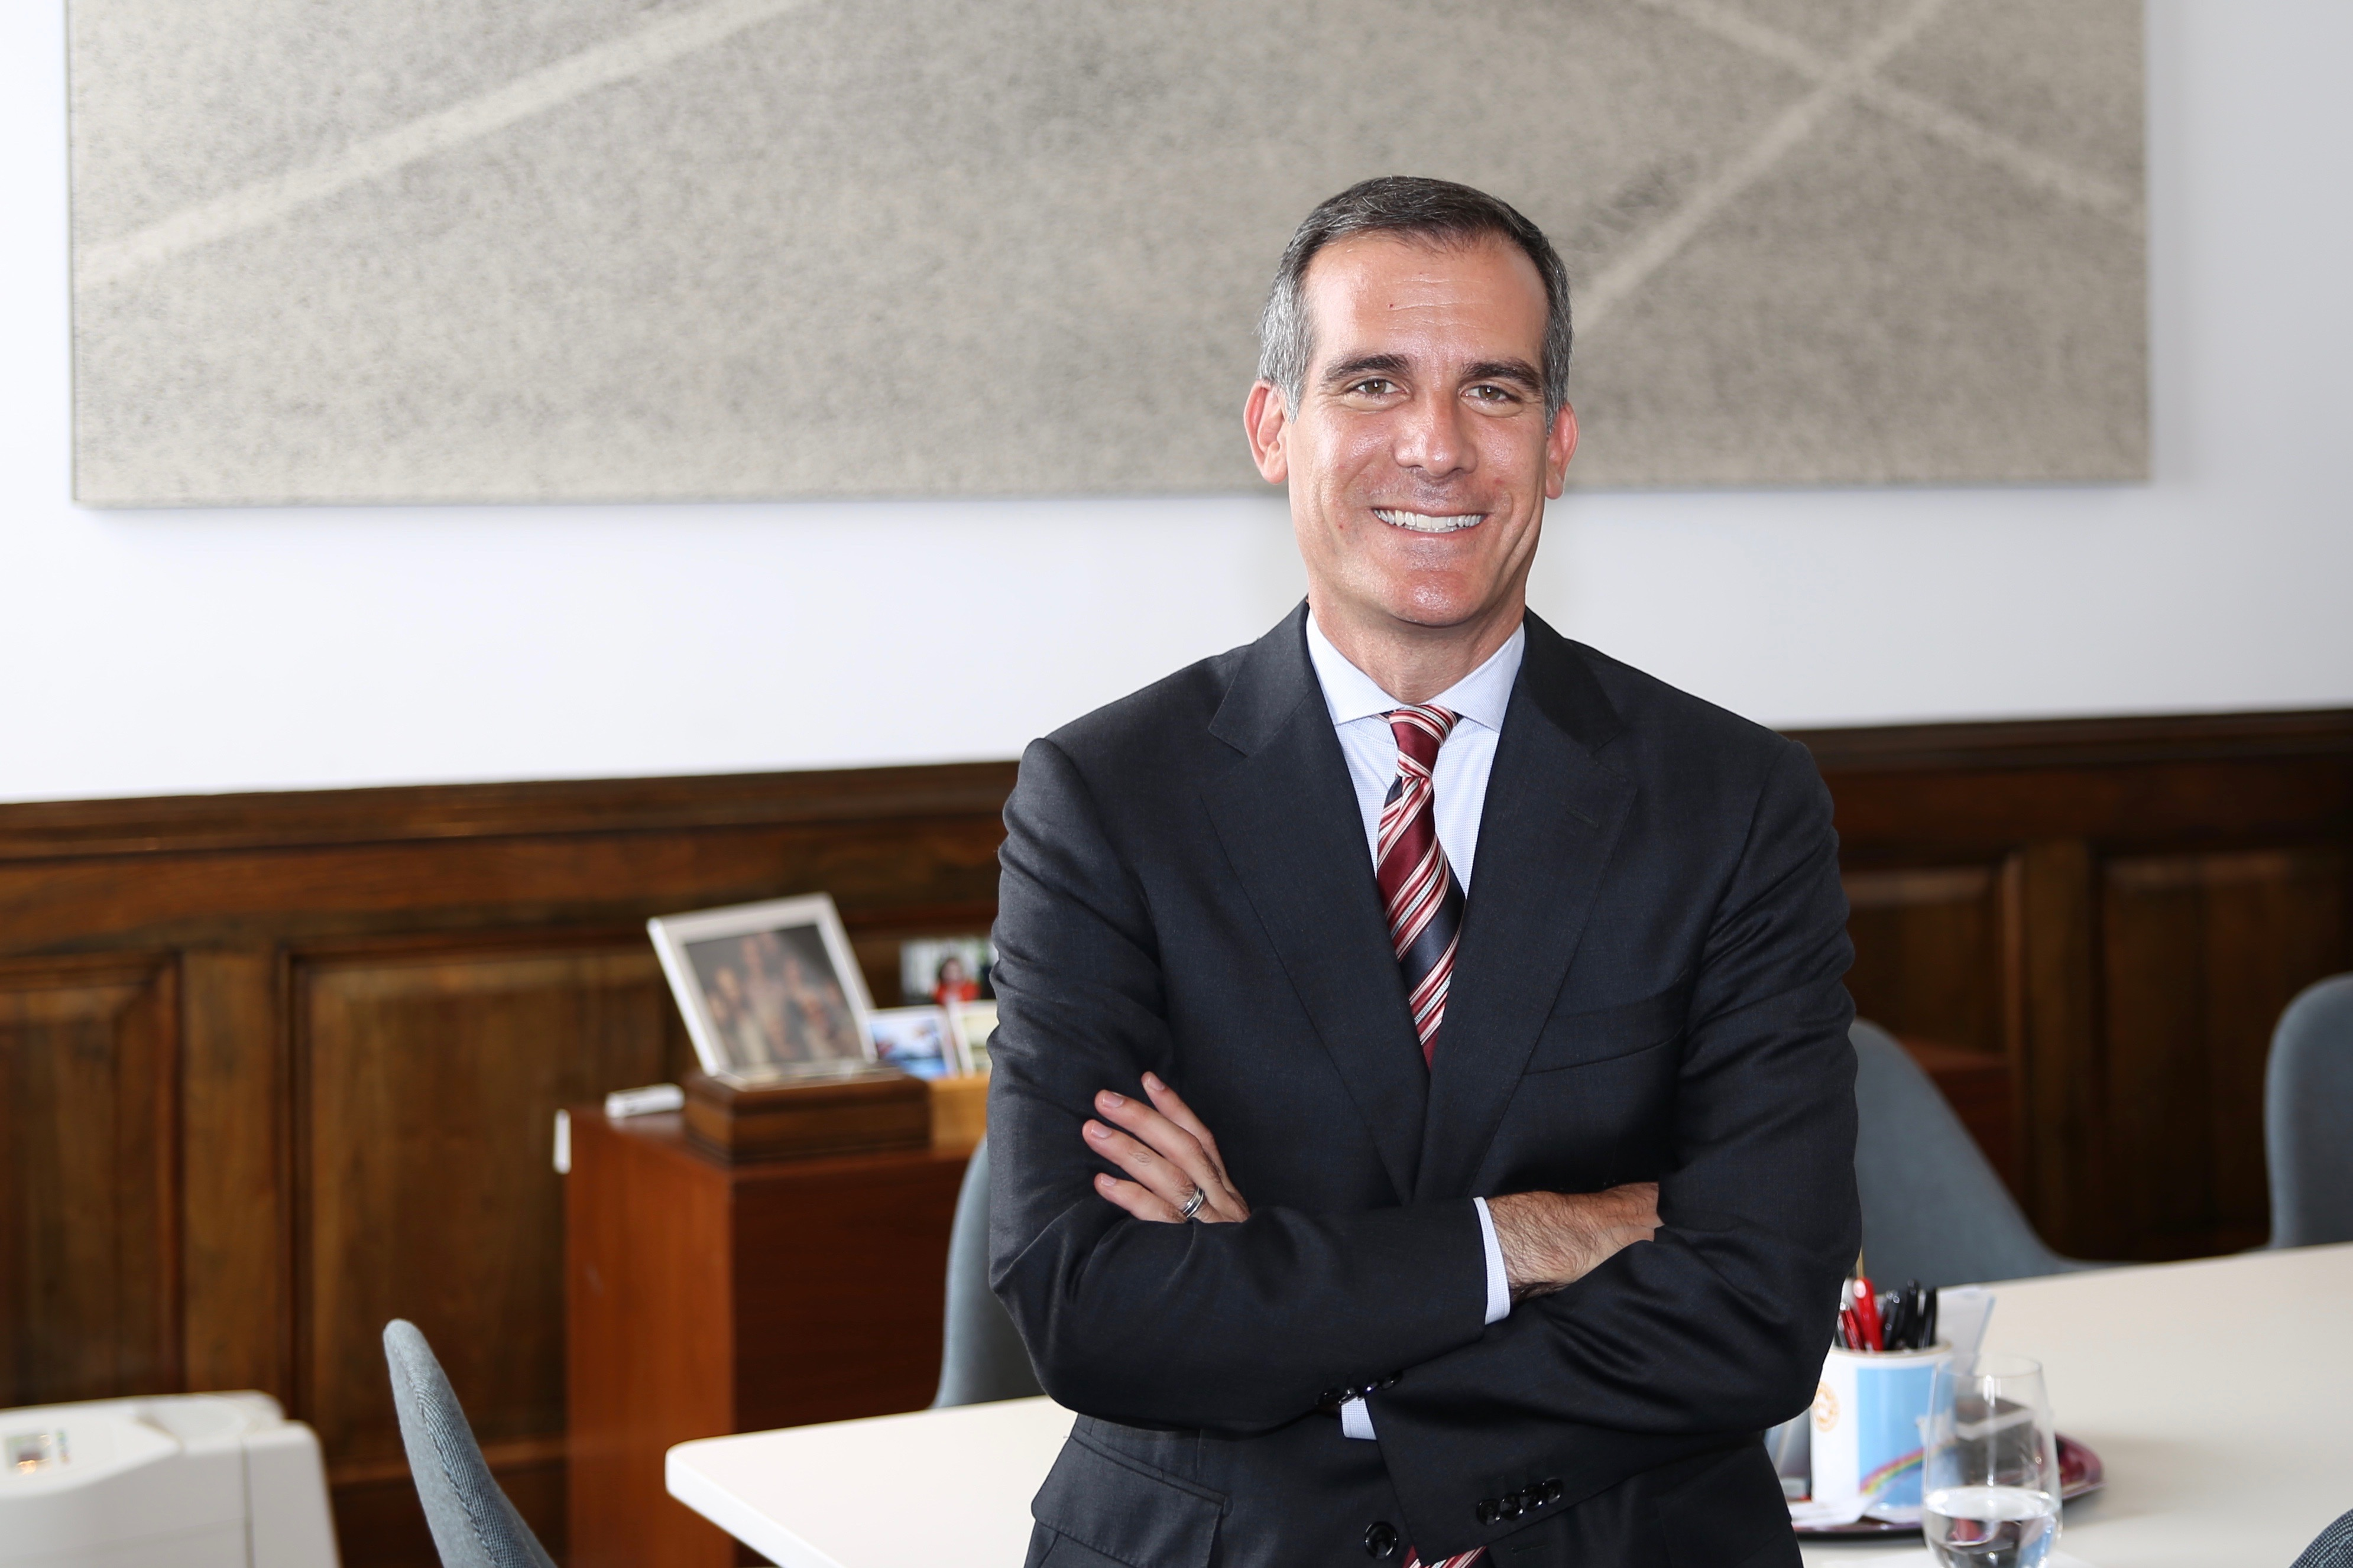 Mayor_Garcetti_IMG_2608.jpeg